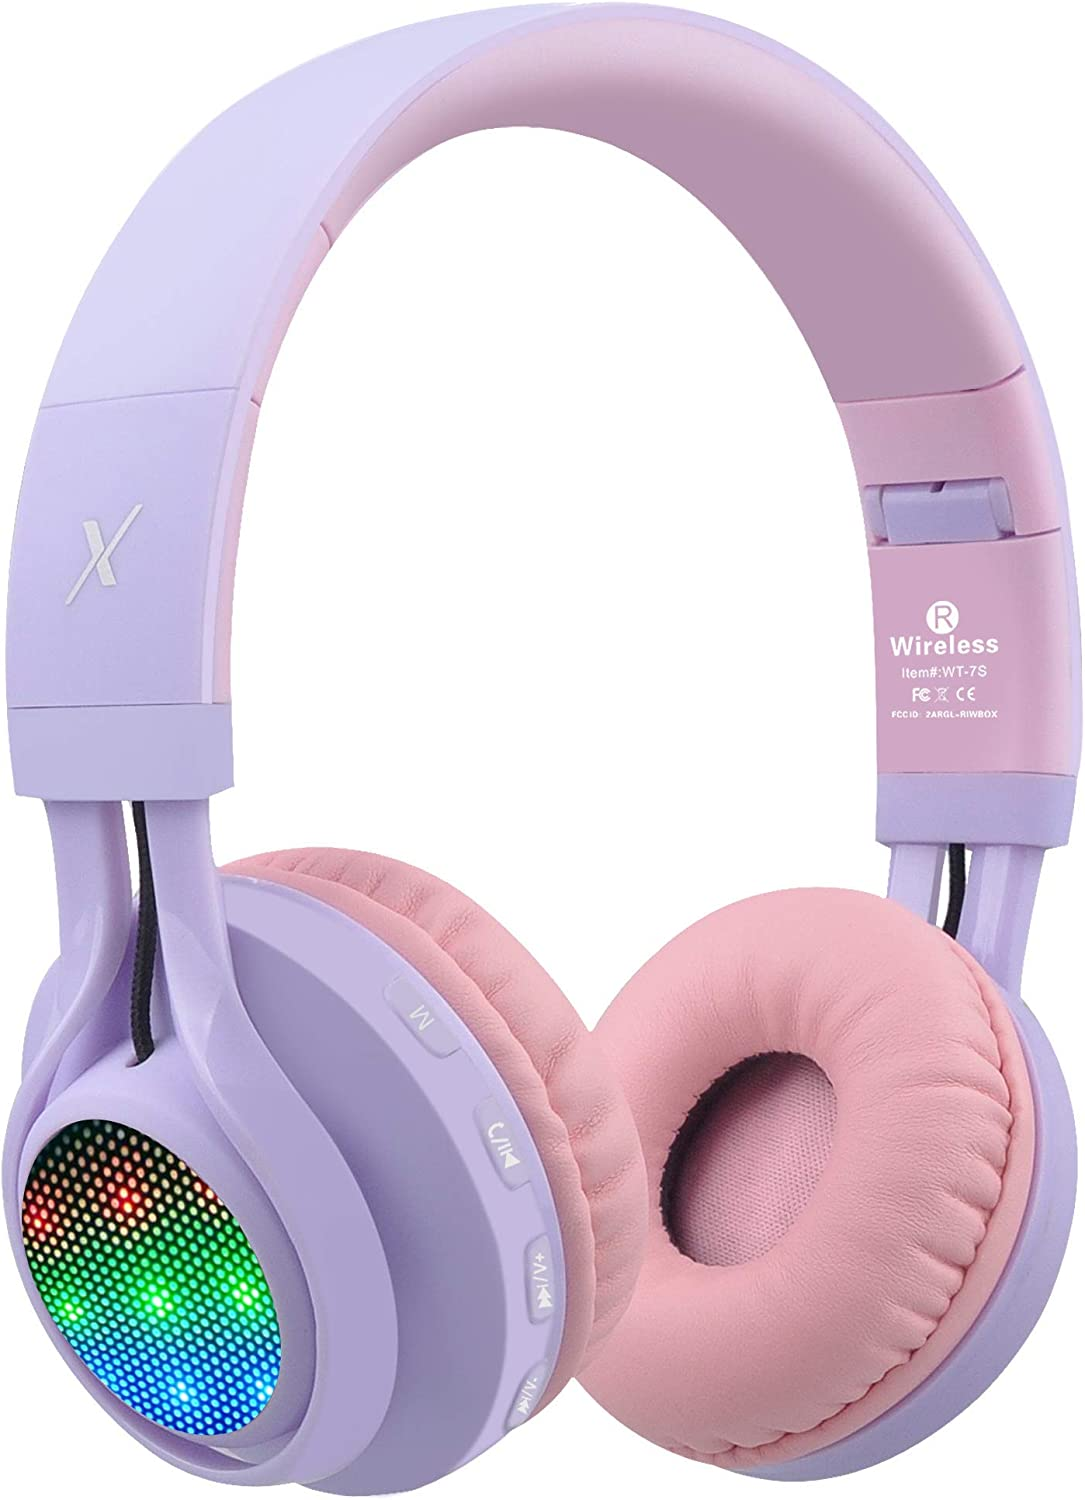 Riwbox WT-7S Bluetooth Headphones Light Up, Foldable Stero Wireless Headset with Microphone and Volume Control for PC/Cell Phones/TV/iPad (Purple) (Renewed)